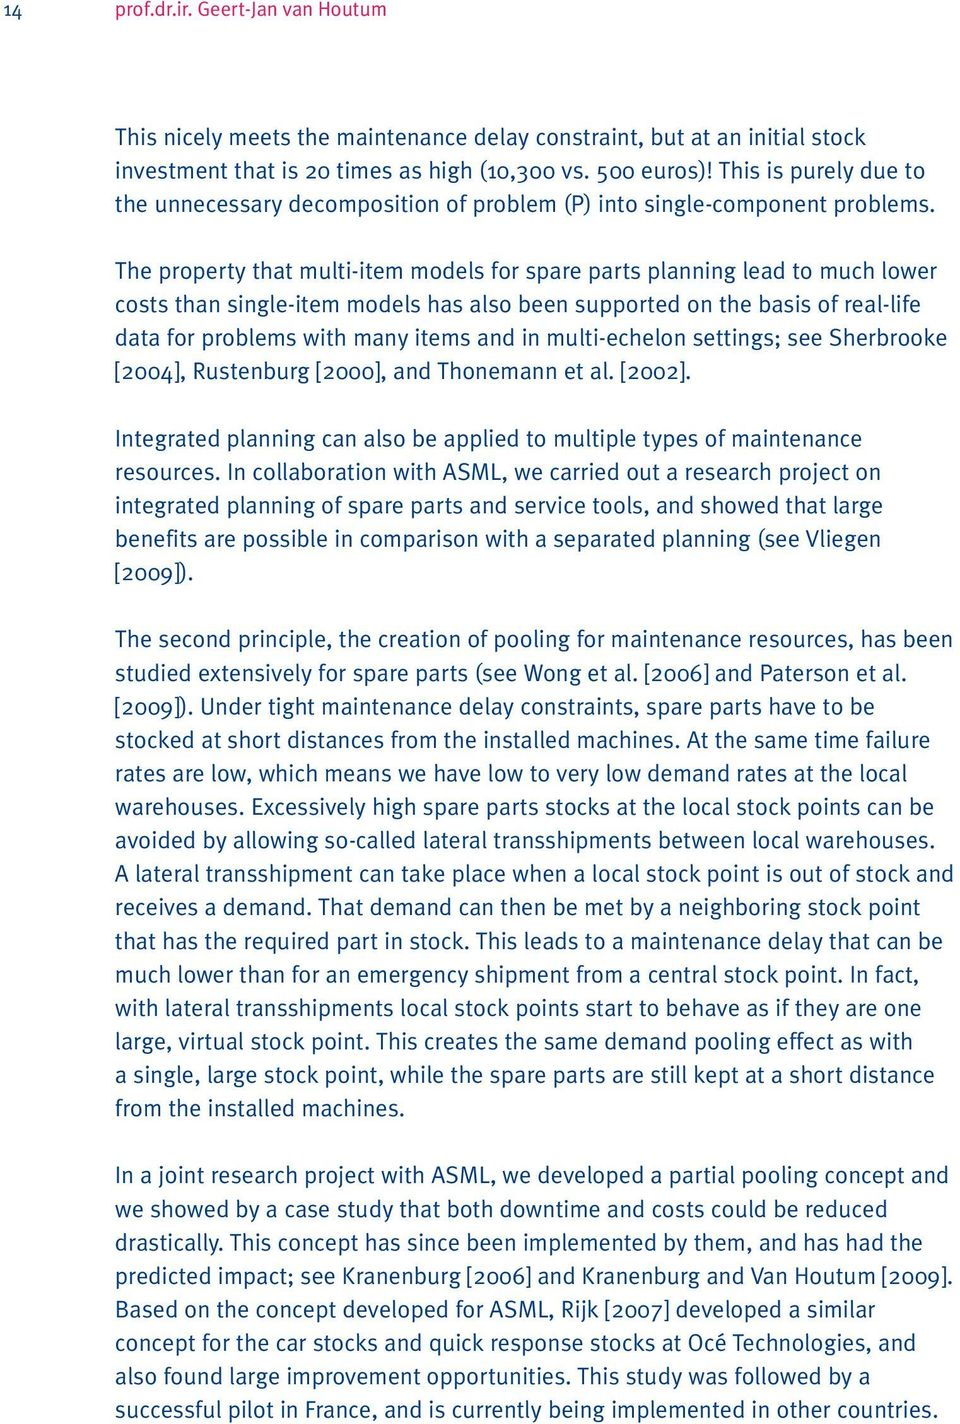 The property that multi-item models for spare parts planning lead to much lower costs than single-item models has also been supported on the basis of real-life data for problems with many items and